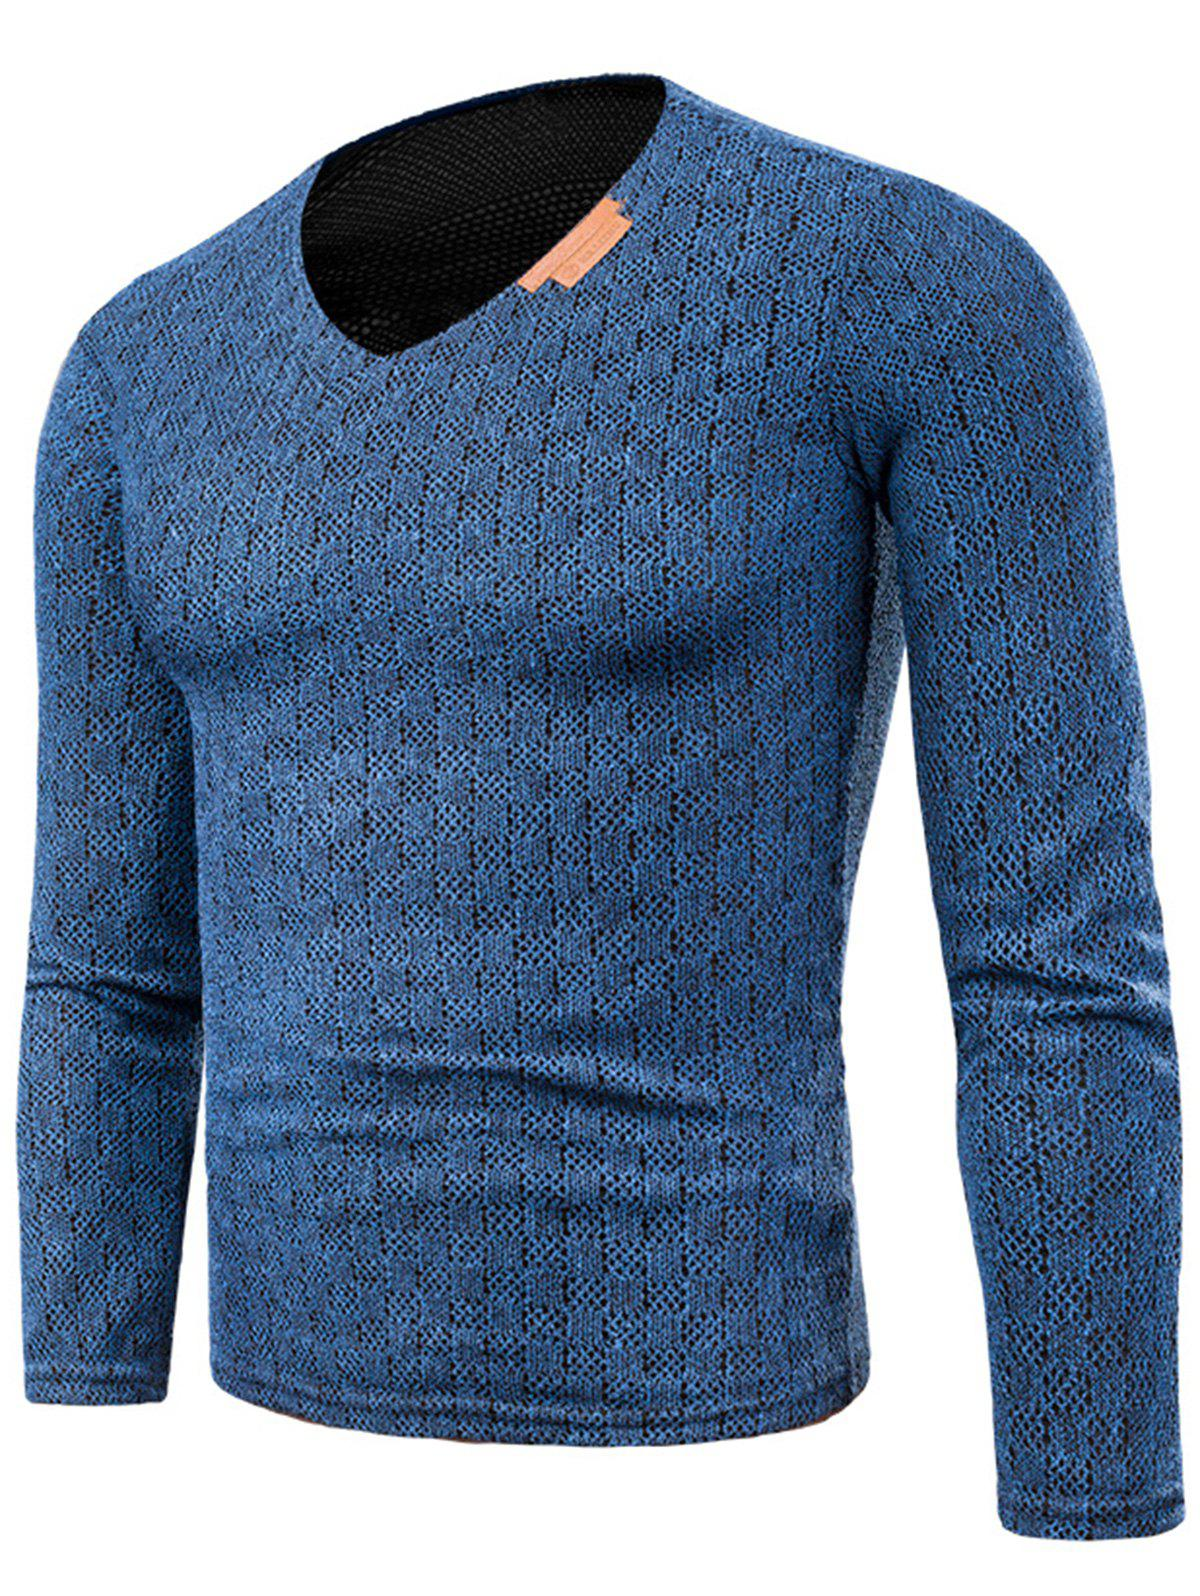 2018 v neck long sleeve applique knitted t shirt blue xl for Applique shirts for sale